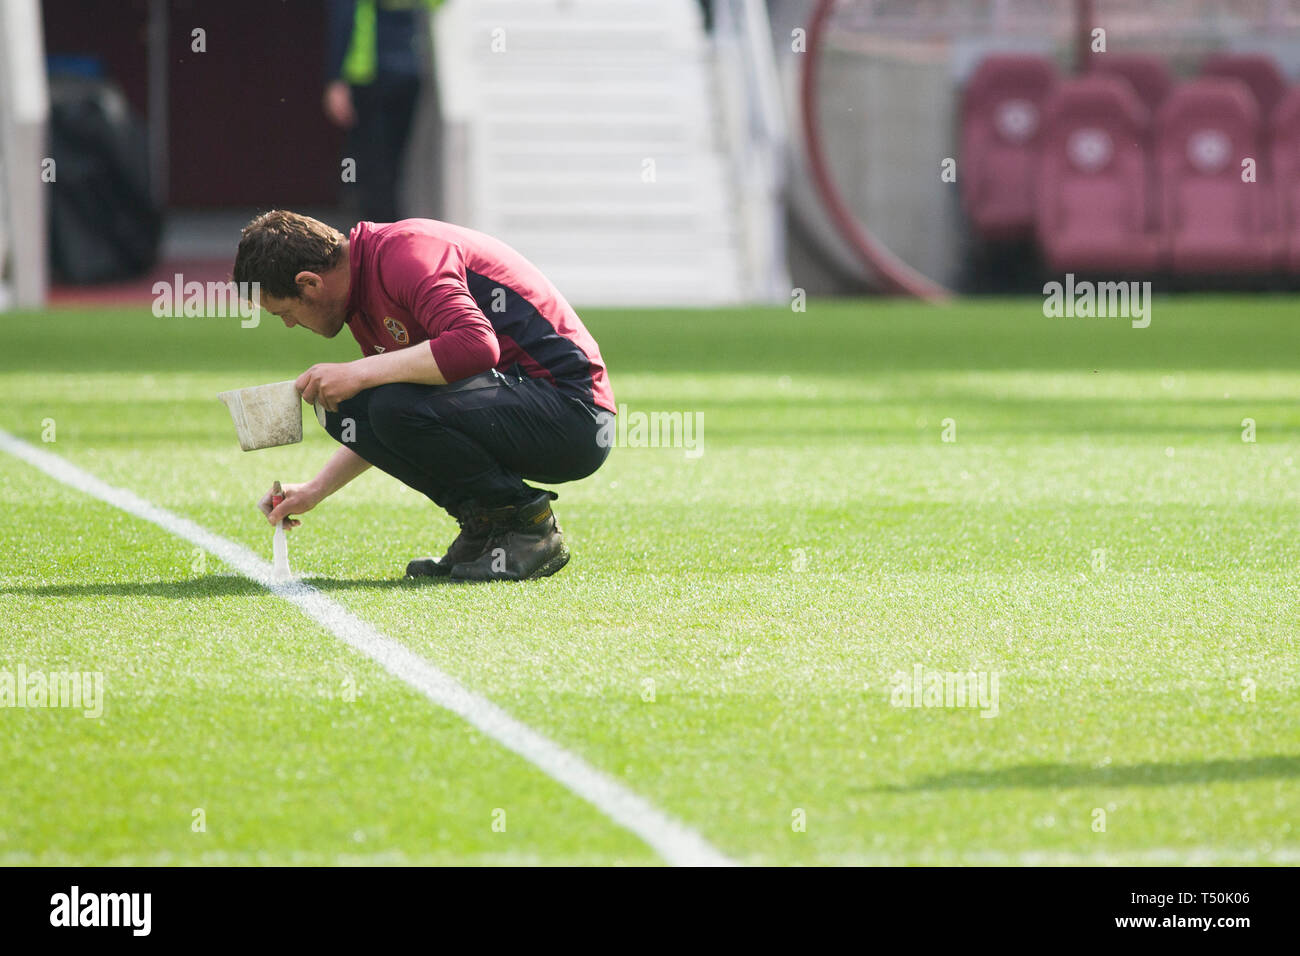 Edinburgh, UK. 20th Apr, 2019. A groundsman before the Ladbrokes Premiership match between Hearts and Rangers at Tynecastle Park on April 20 2019 in Edinbugh, UK. Credit: Scottish Borders Media/Alamy Live News - Stock Image